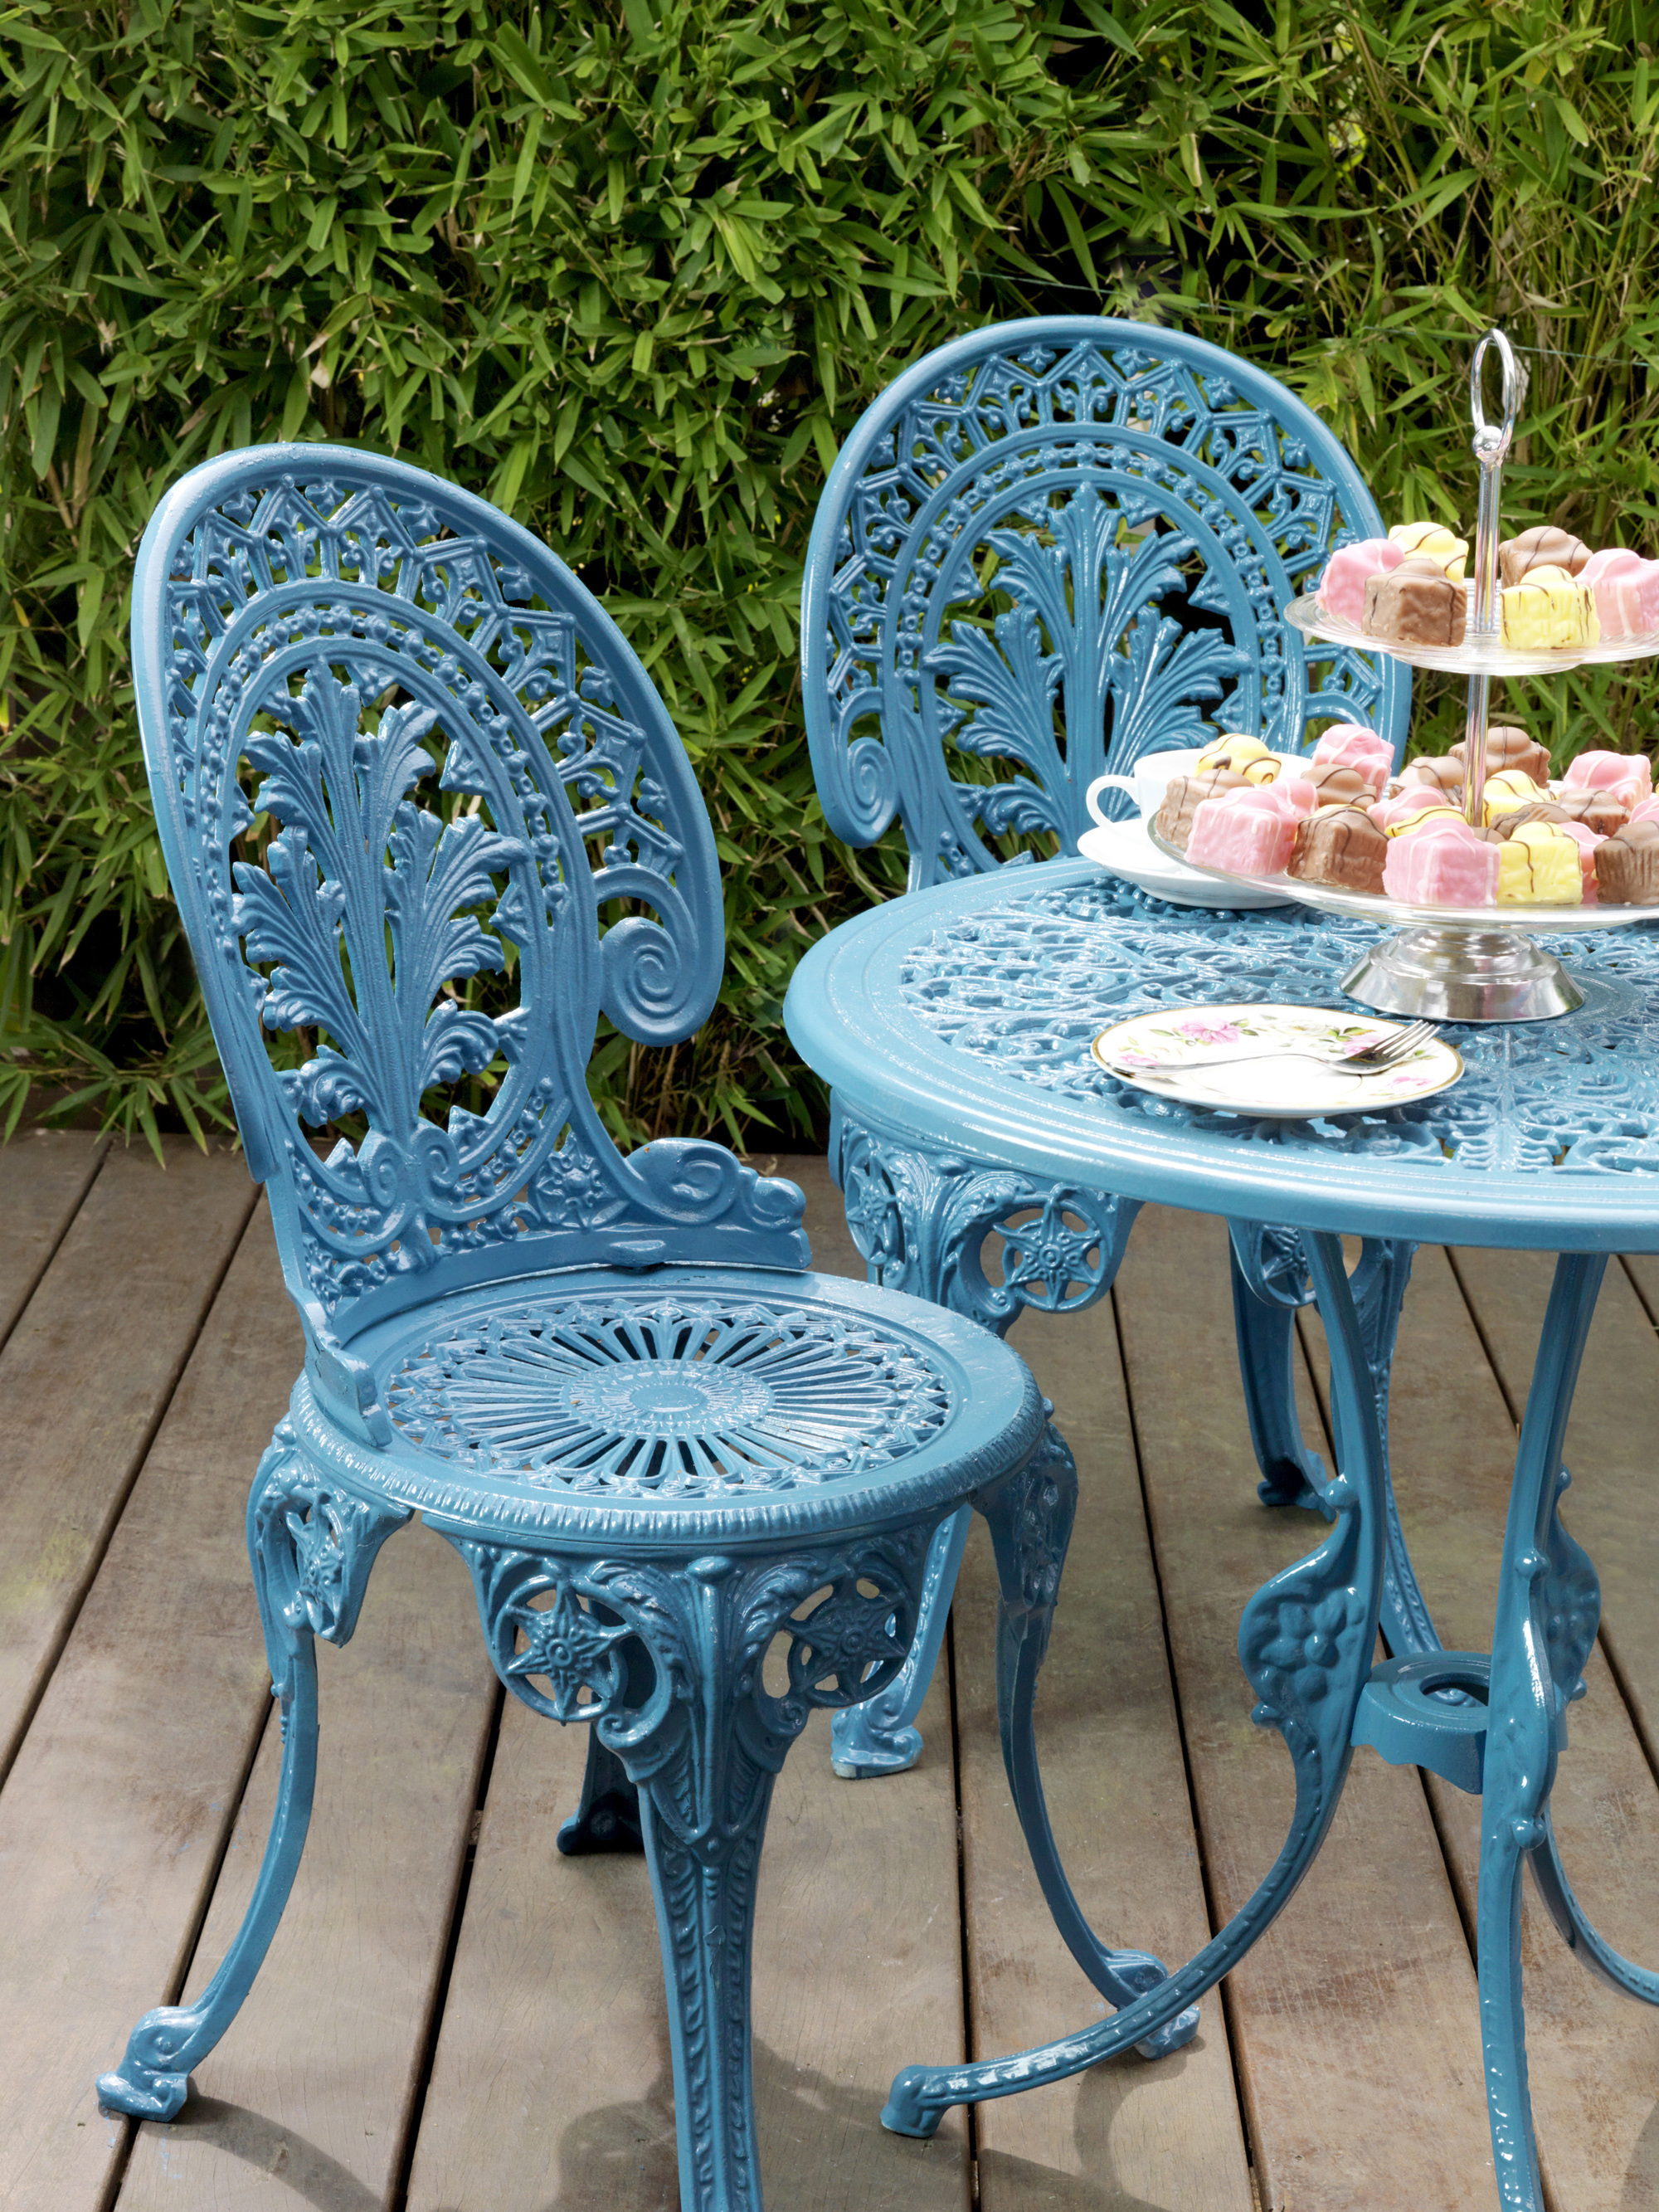 Restoring Metal Garden Furniture This Autumn